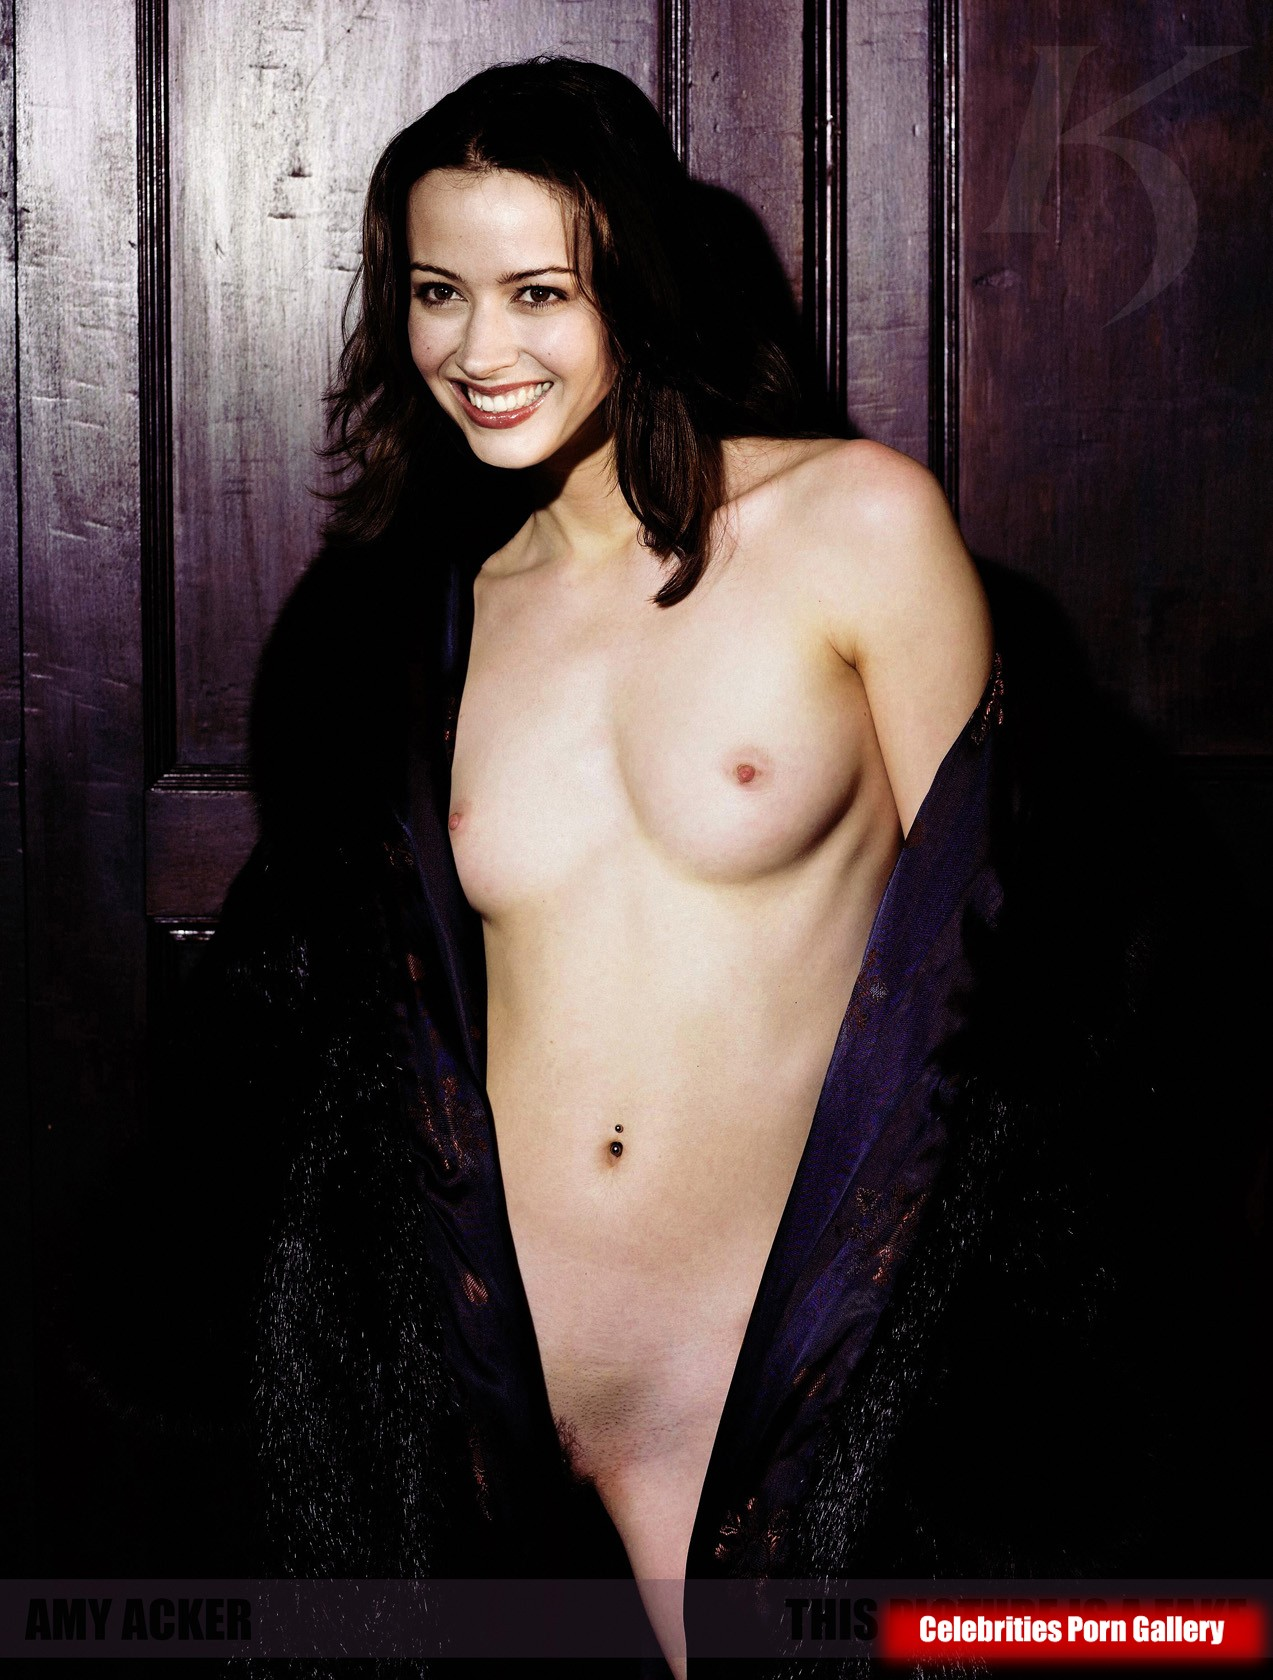 Amy Acker Nude Photos Awesome amy acker nude celebrity pictures » amy-acker-free-nude-celeb-pics